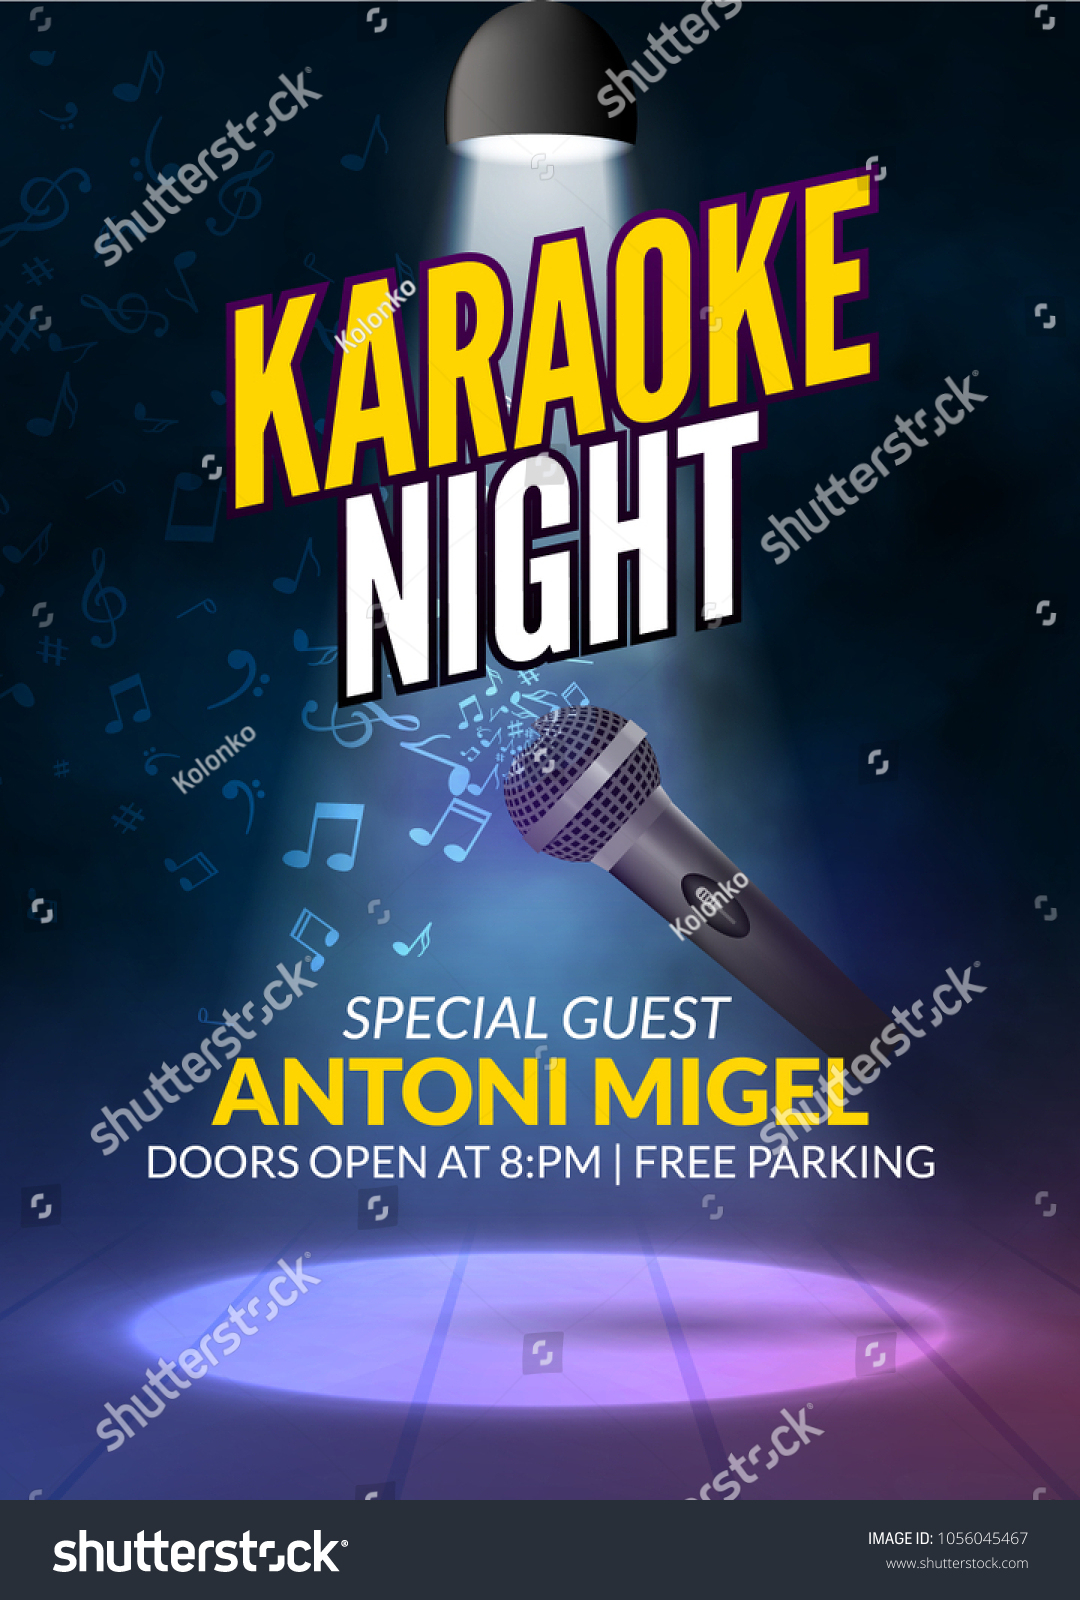 Karaoke Party Invitation Poster Design Template Stock Photo (Photo ...